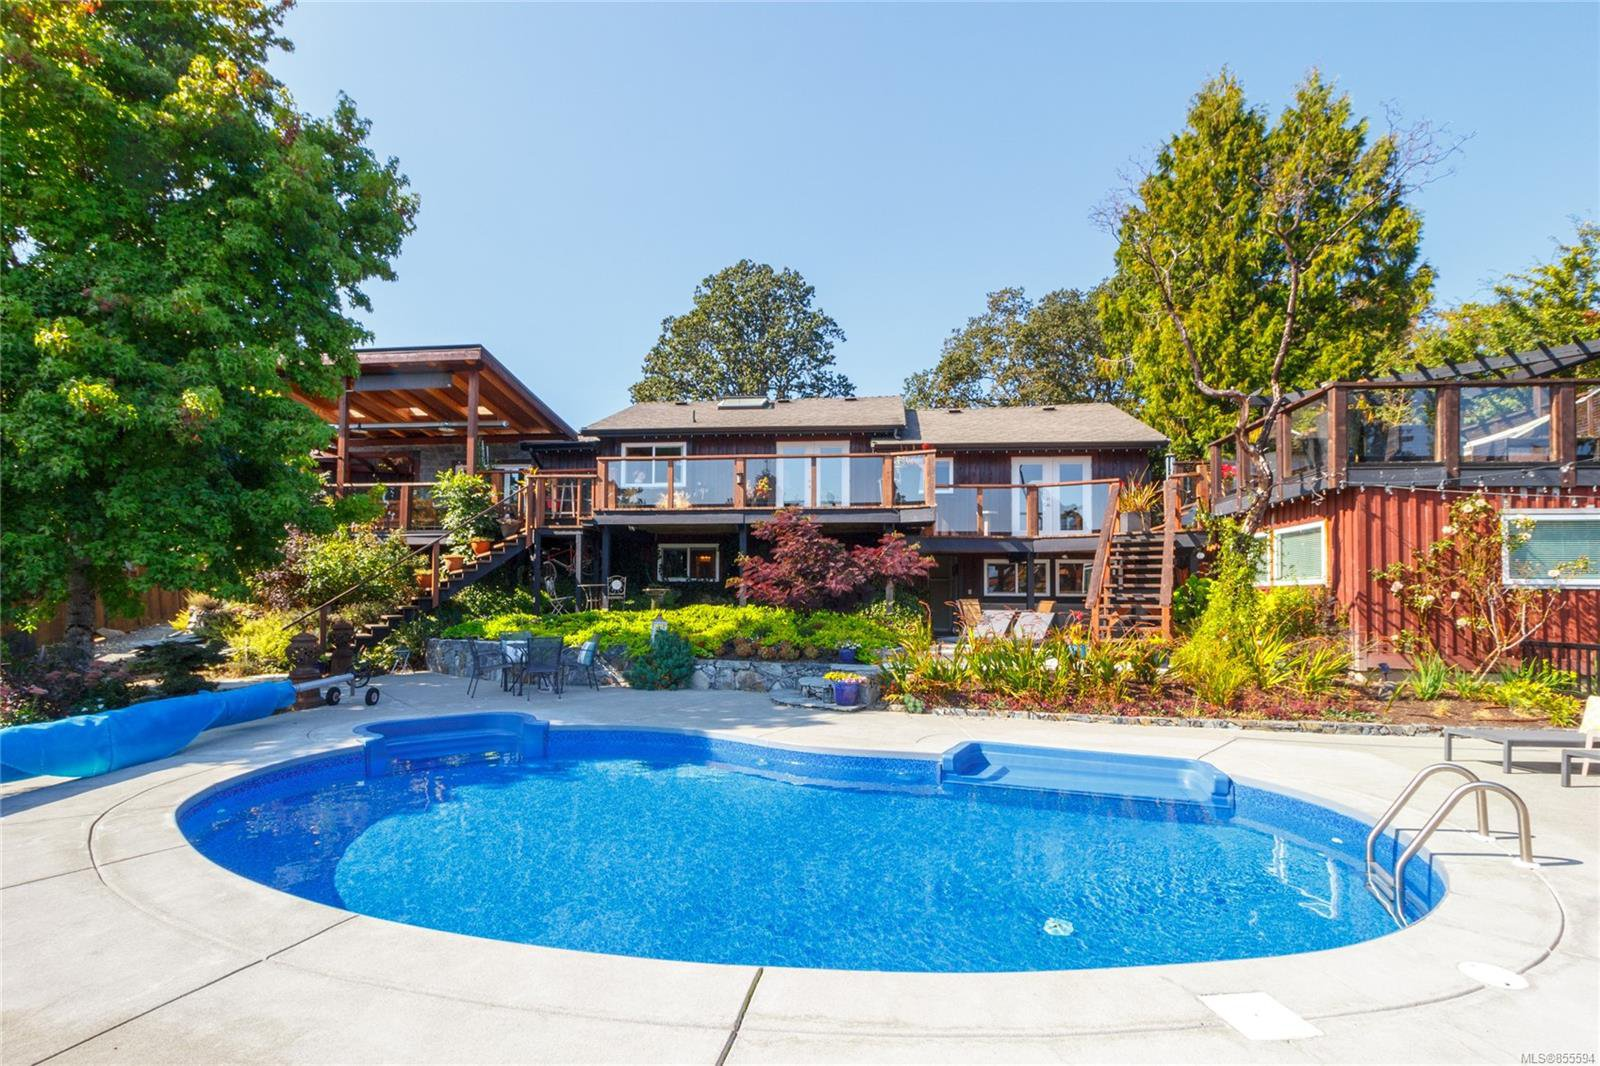 Main Photo: 4579 Scarborough Rd in : SW Beaver Lake House for sale (Saanich West)  : MLS®# 855594